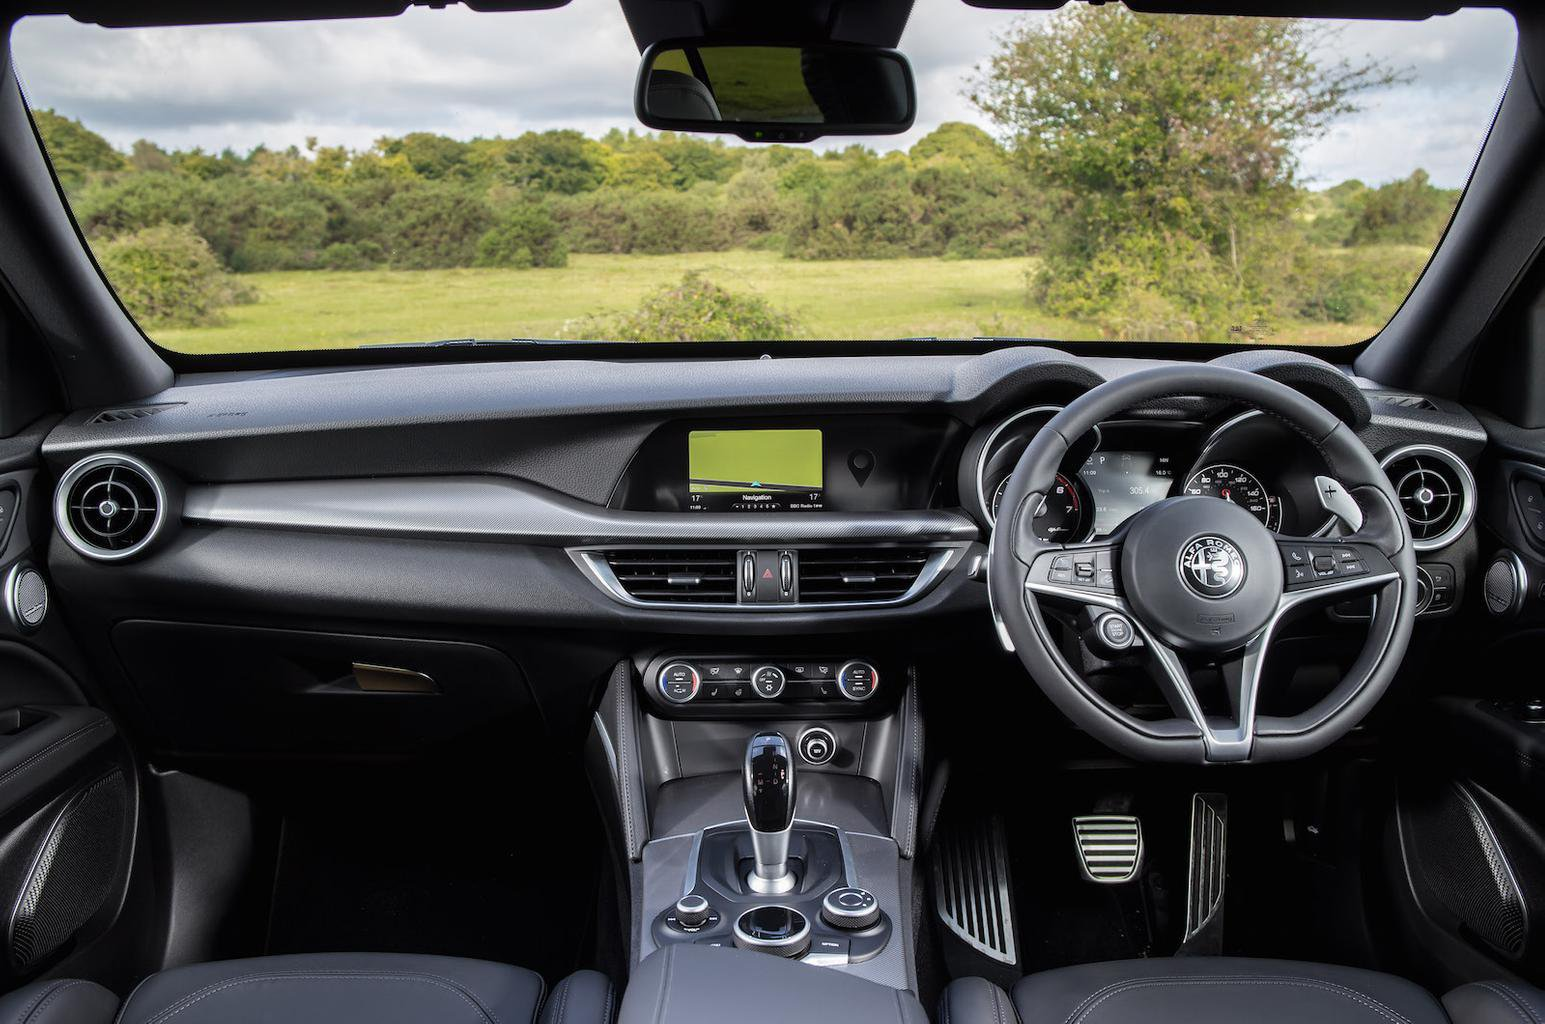 Alfa Romeo Stelvio 2.0 Turbo 200 Super Auto - interior